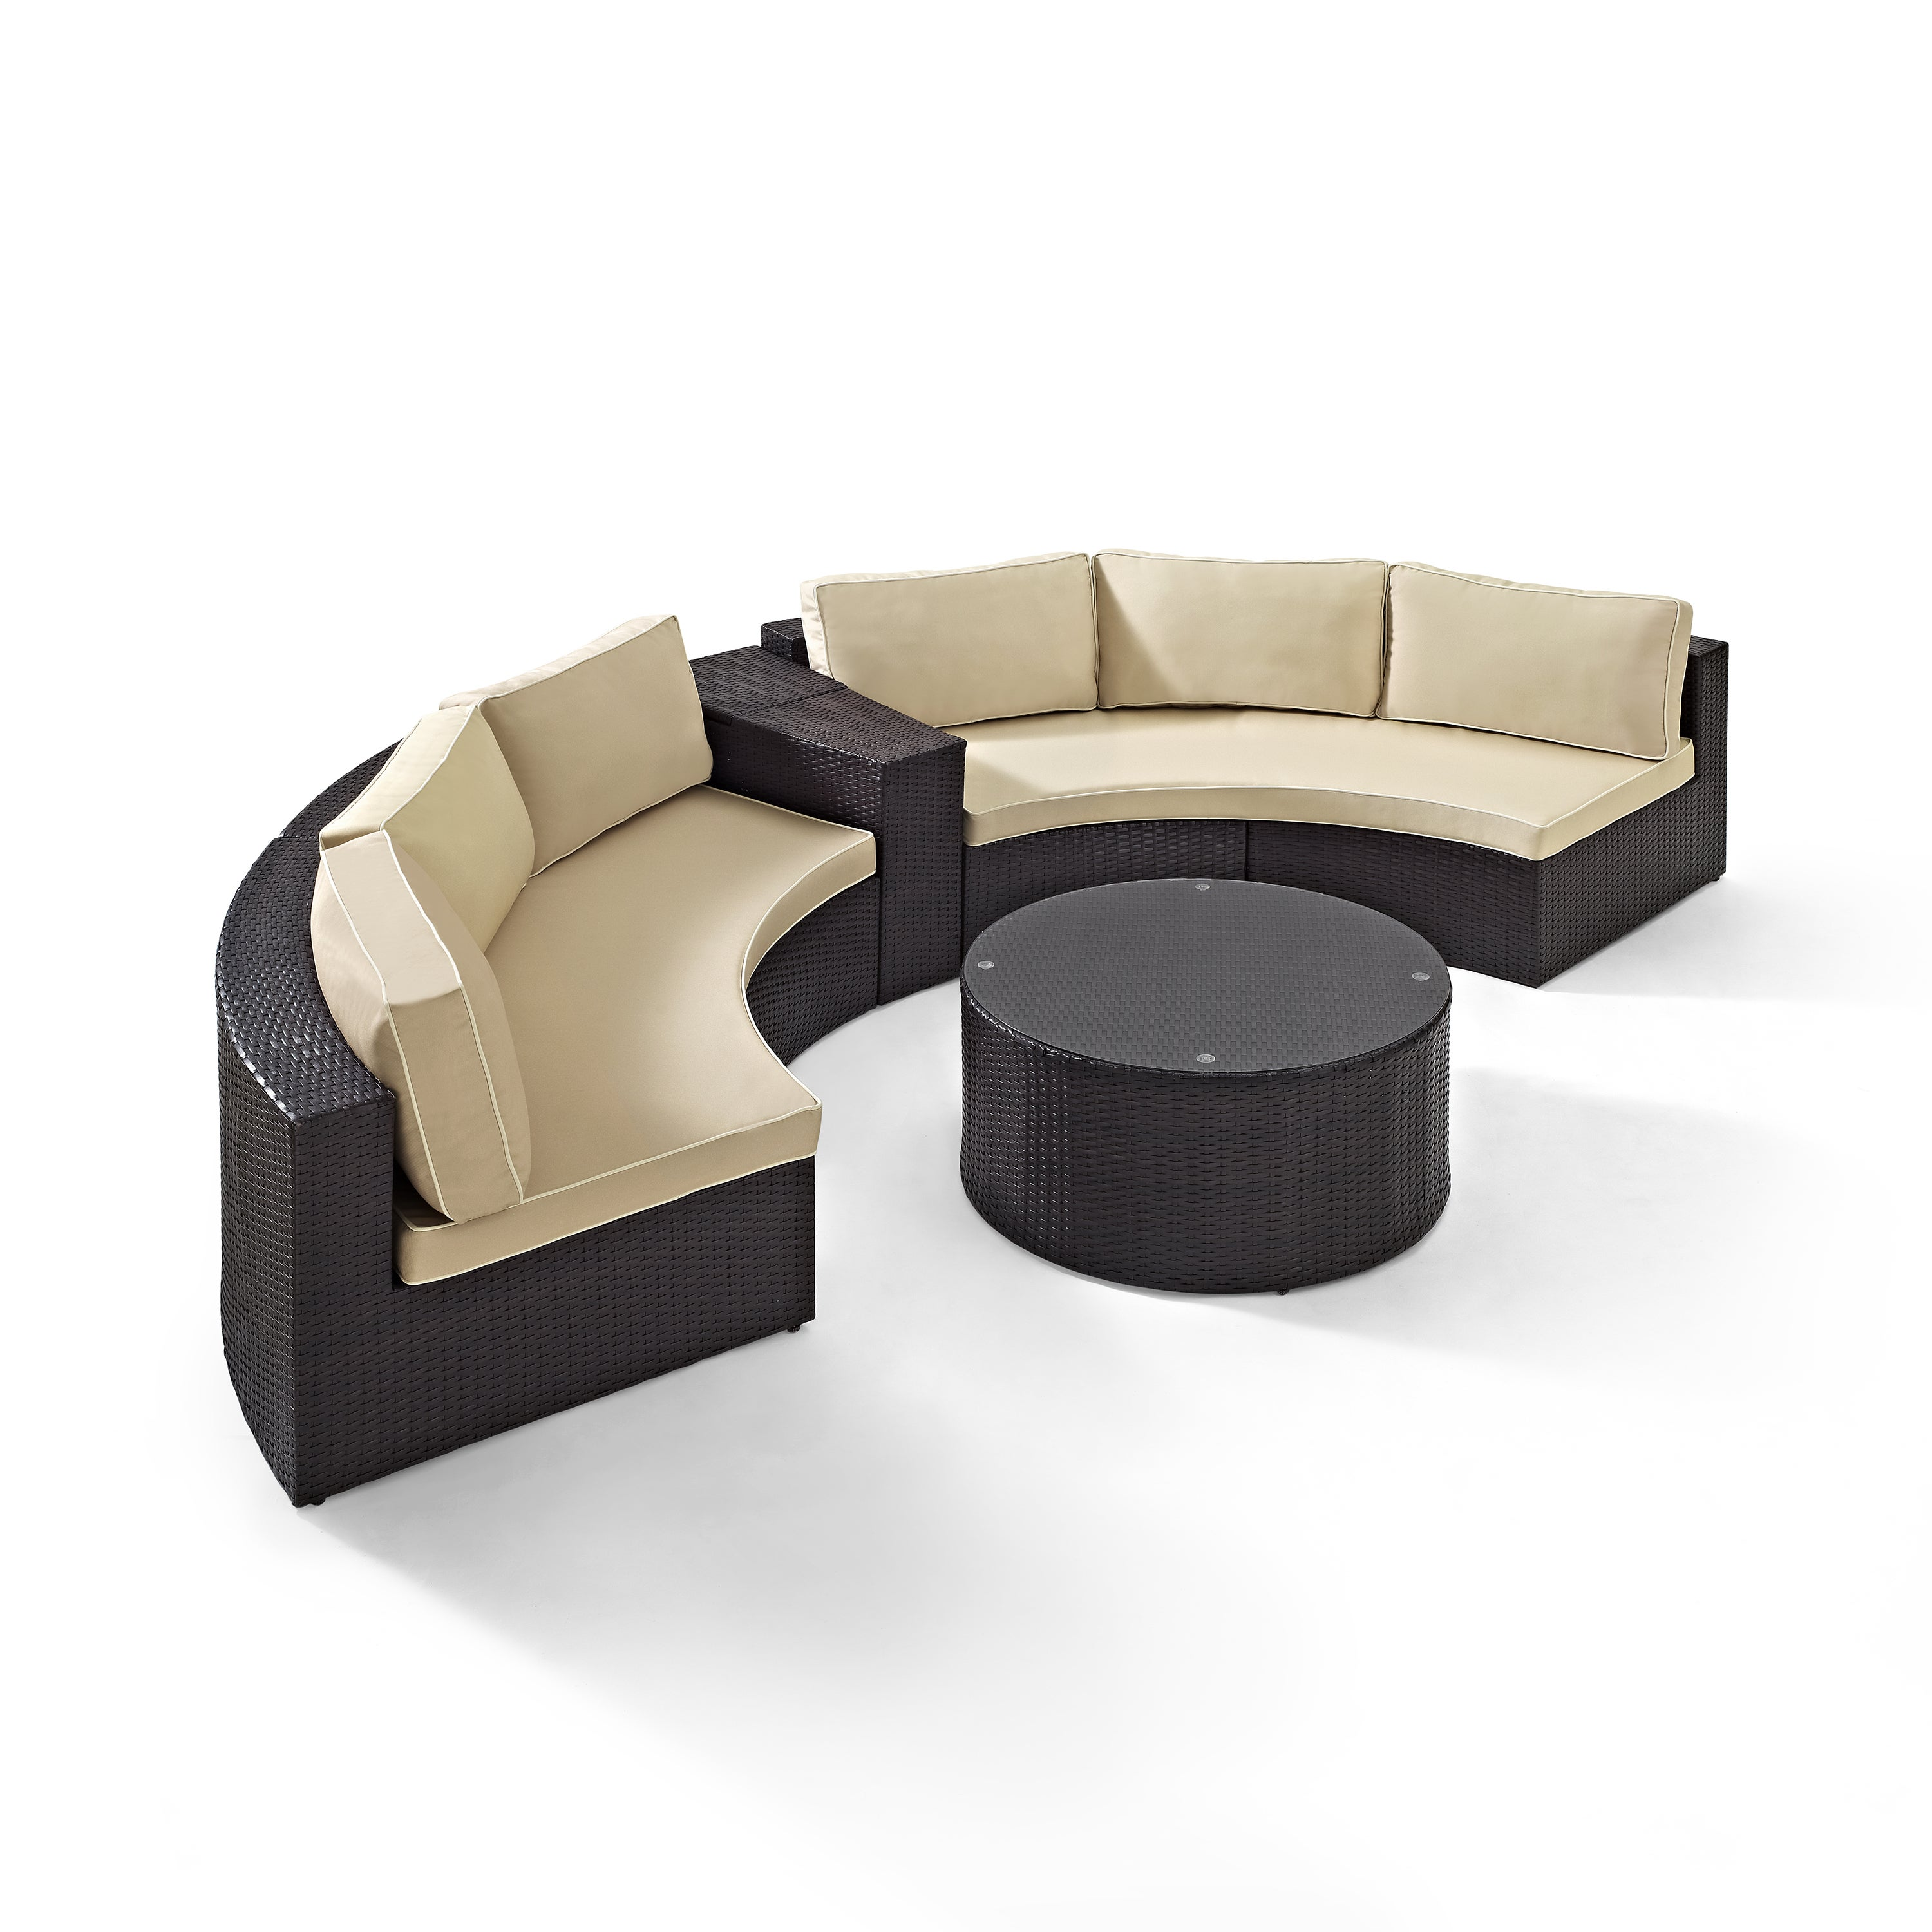 Catalina 4 Piece Outdoor Wicker Seating Set With Sand Cushions Two Round Sectional Sofas Arm Table And Gl Top Coffee